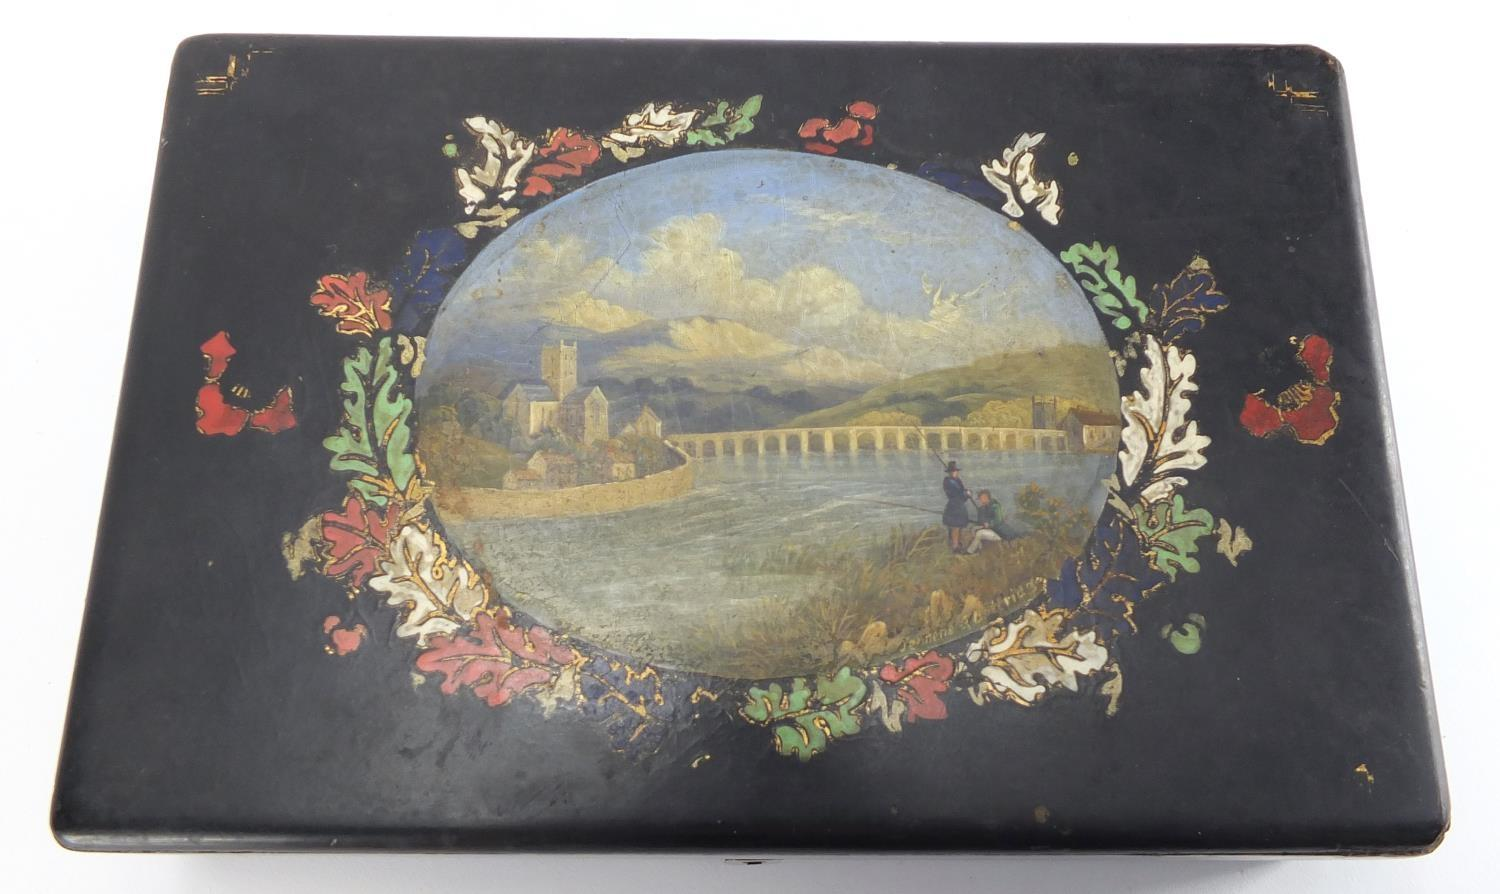 Lot 16 - Victorian Papier-mâché lacquered box by Jennens and Bettridge, the hinged lid hand painted with